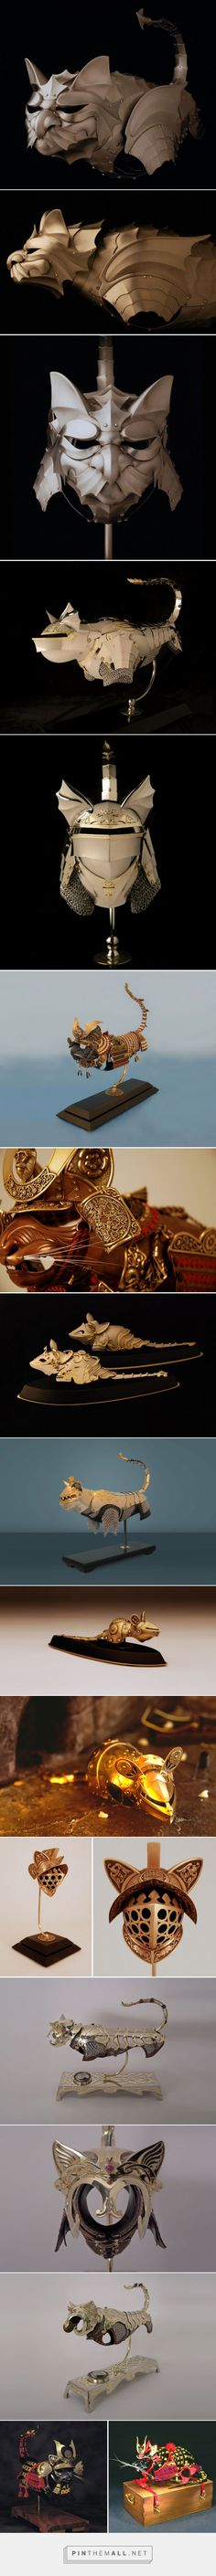 This Is What Cats And Mice Would Wear In The Endless War Between Two Old Enemies!   Superstar Lifestyle http://www.superstarlifestyle.com/this-is-what-cats-and-mice-would-wear-in-endless-war-between-two-old-enemies/ - created via http://pinthemall.net